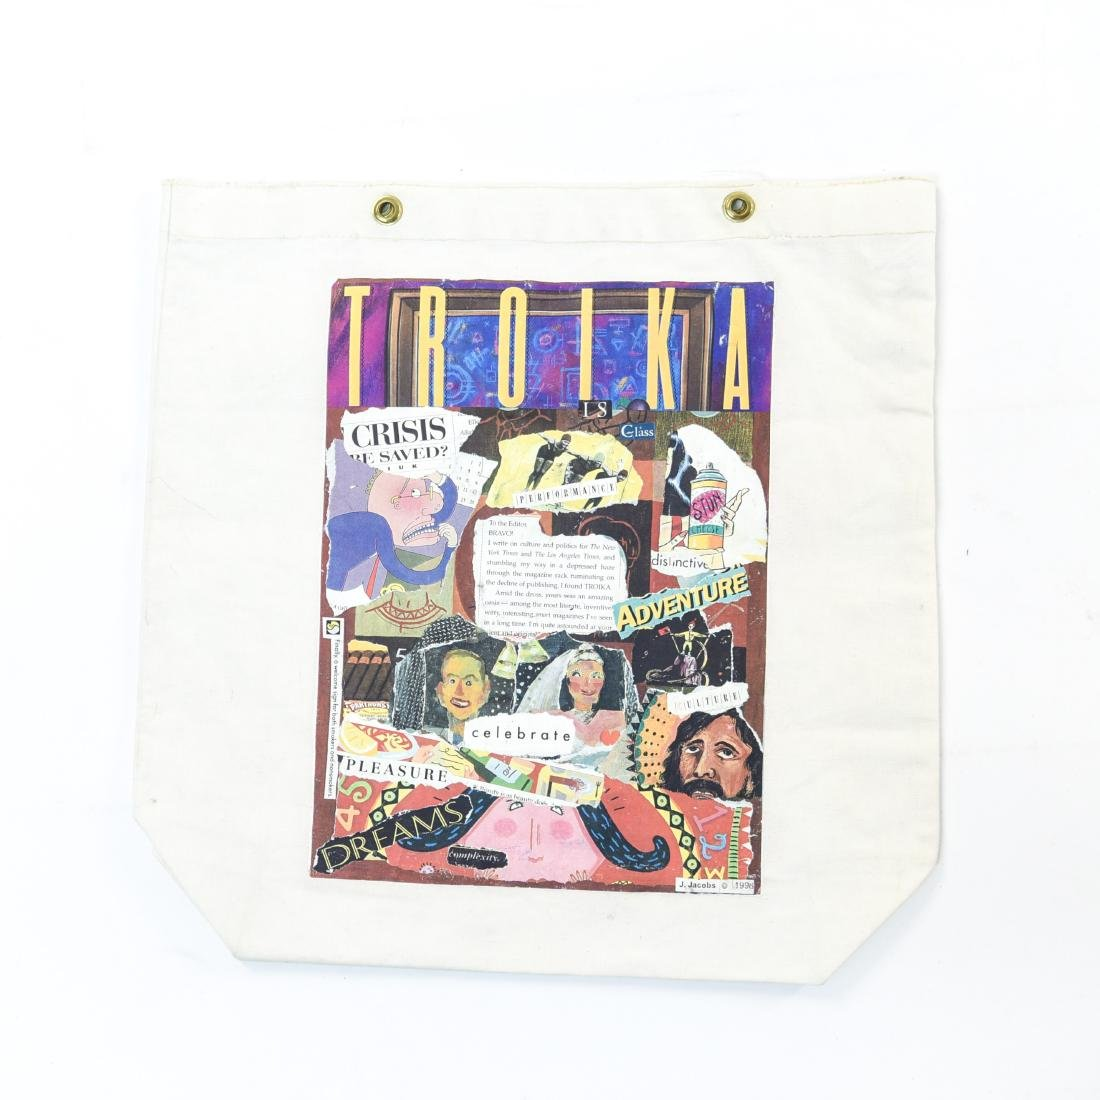 J. JACOBS COLLAGE MIXED MEDIA BAG